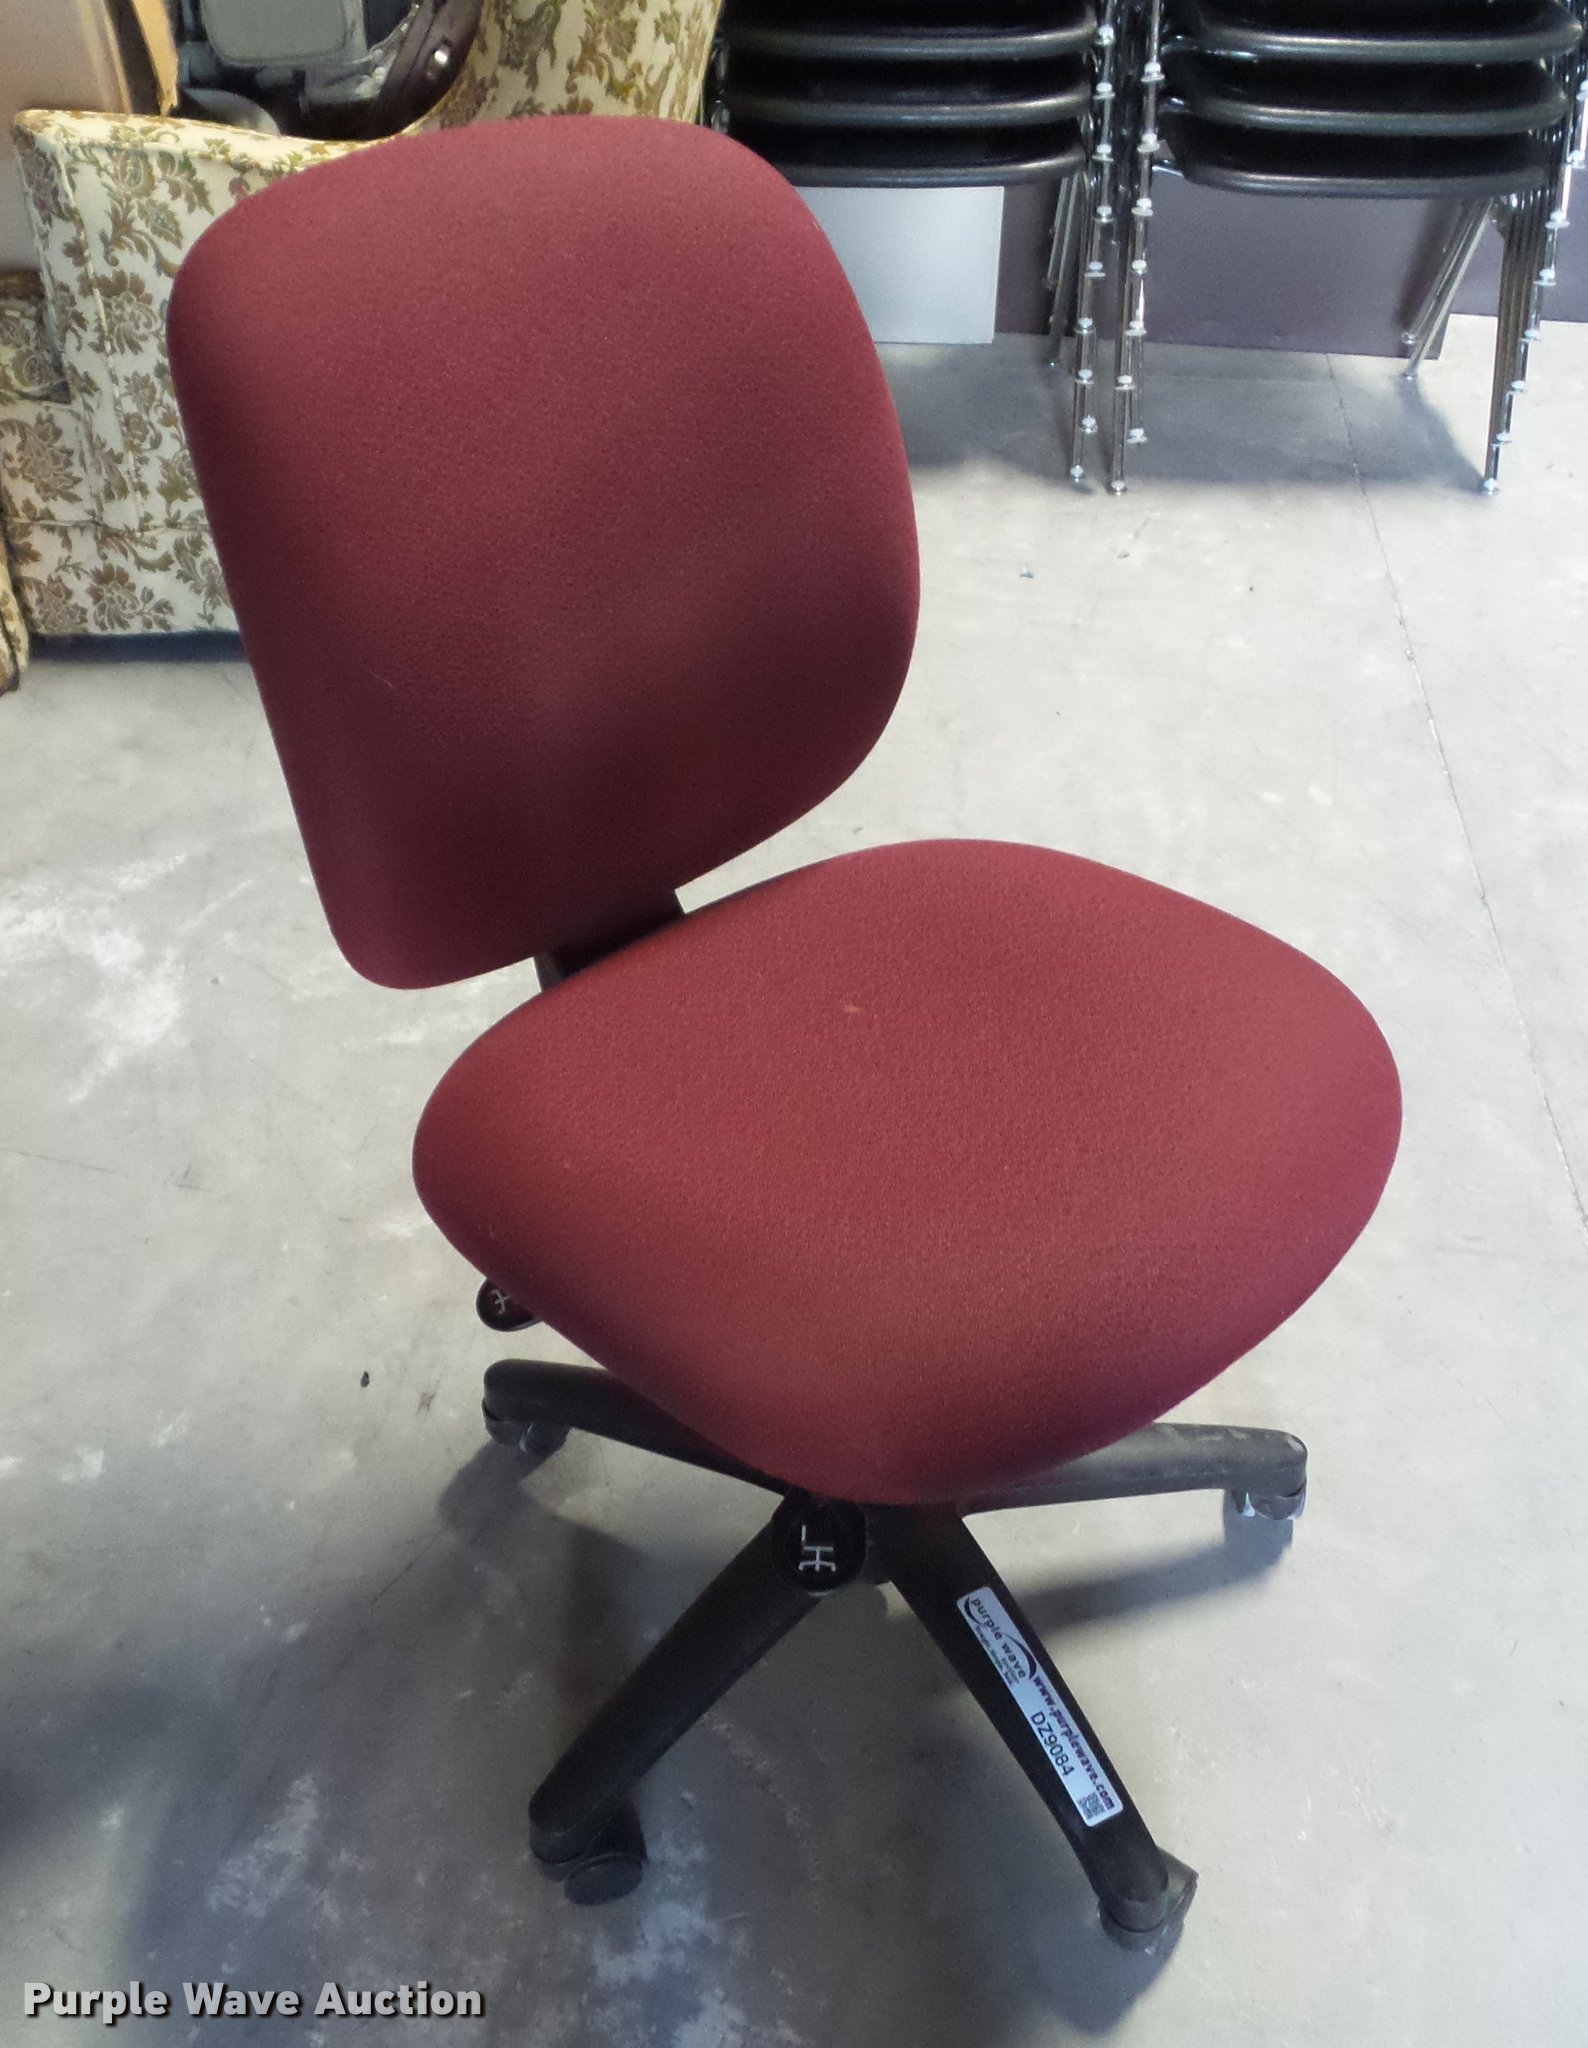 dz9084 image for item dz9084 18 hon office chairs